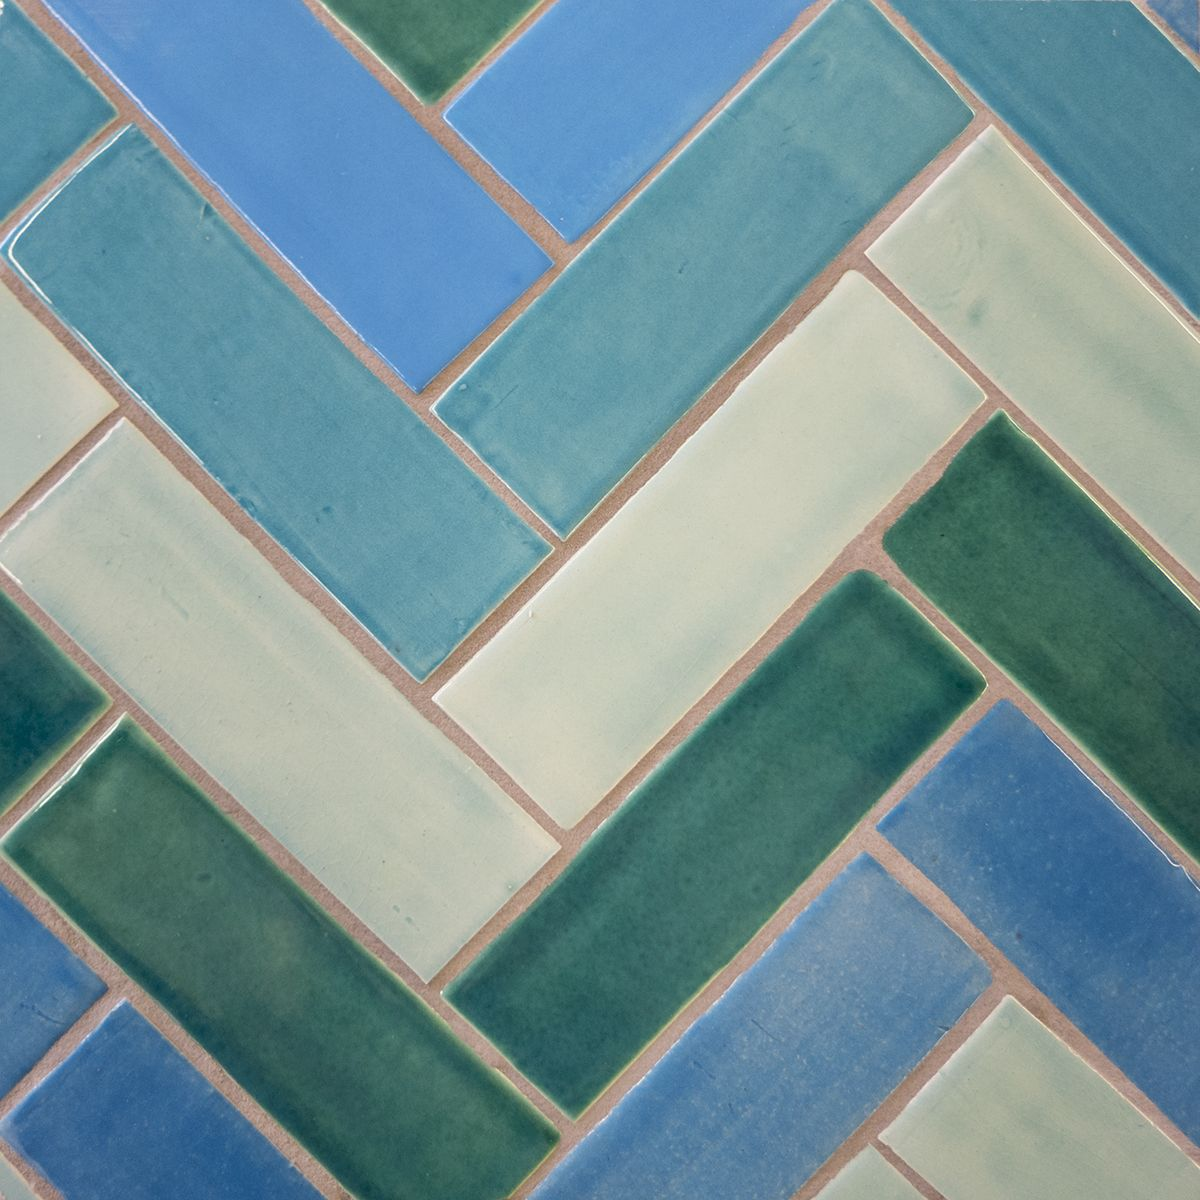 Subway Tile and Fish Scales for lululemon Temecula, CA | Pinterest ...